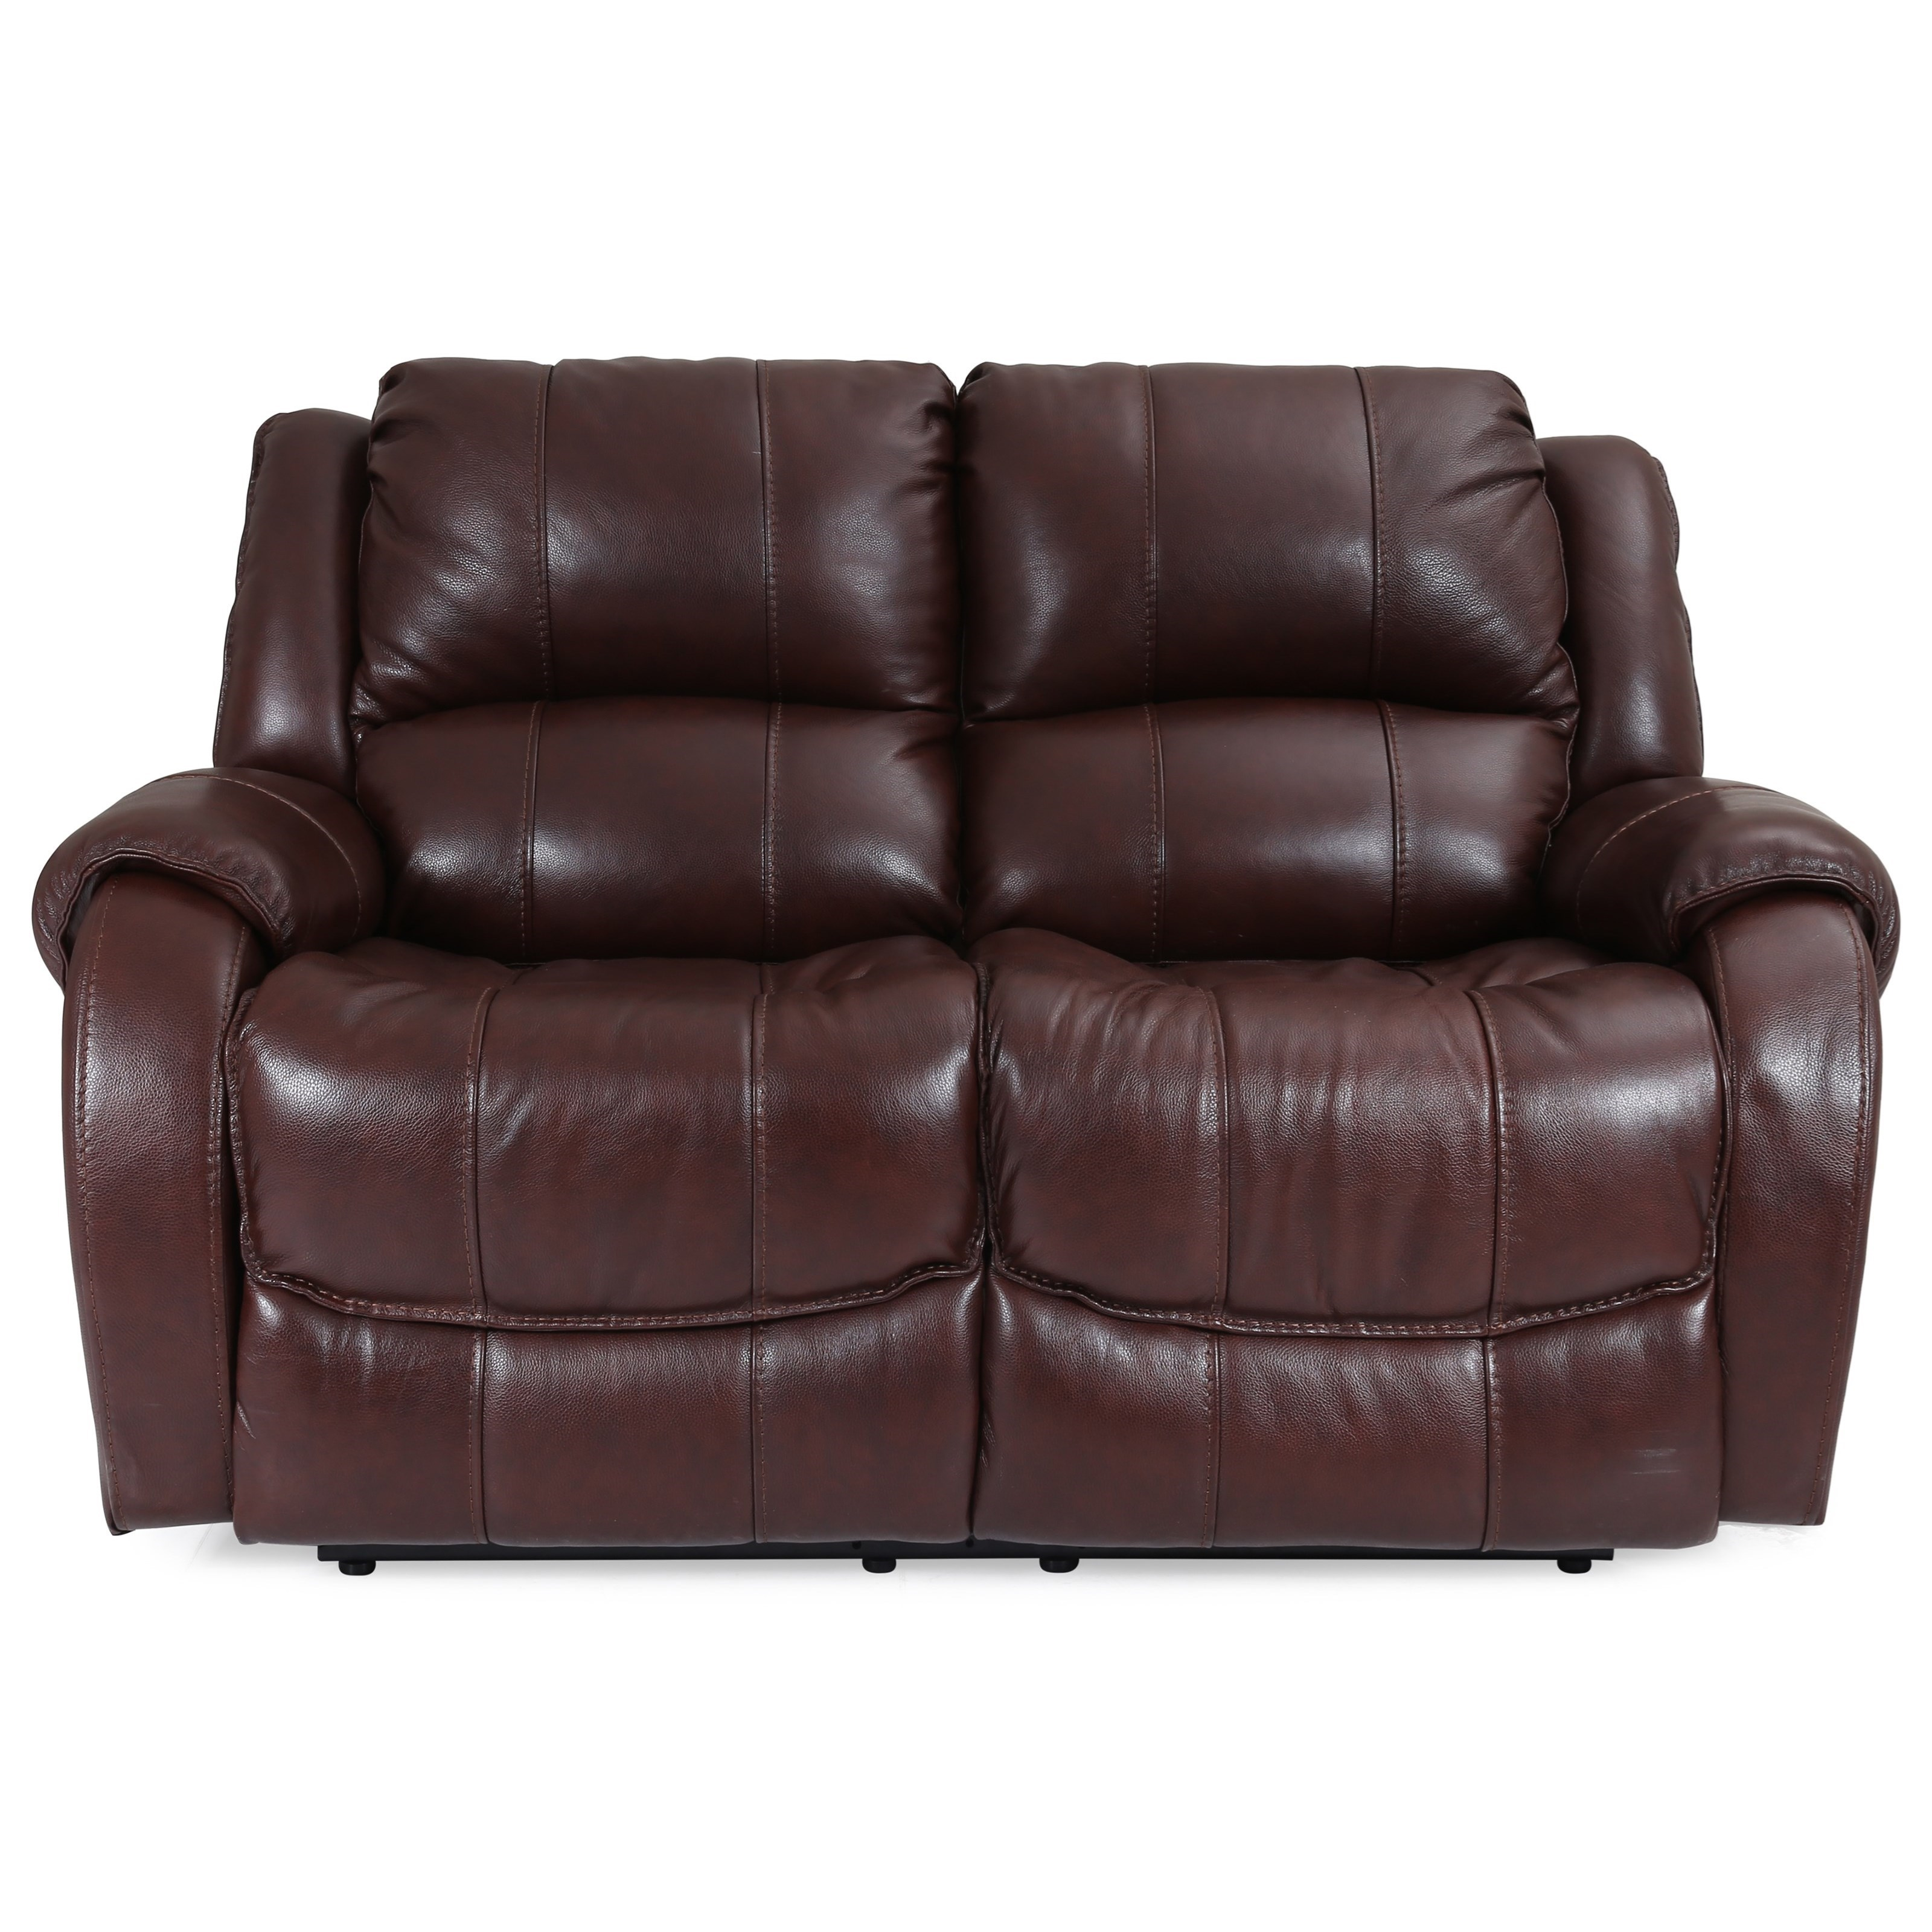 5171 Power Loveseat with Power Headrest by Cheers Sofa at Lagniappe Home Store